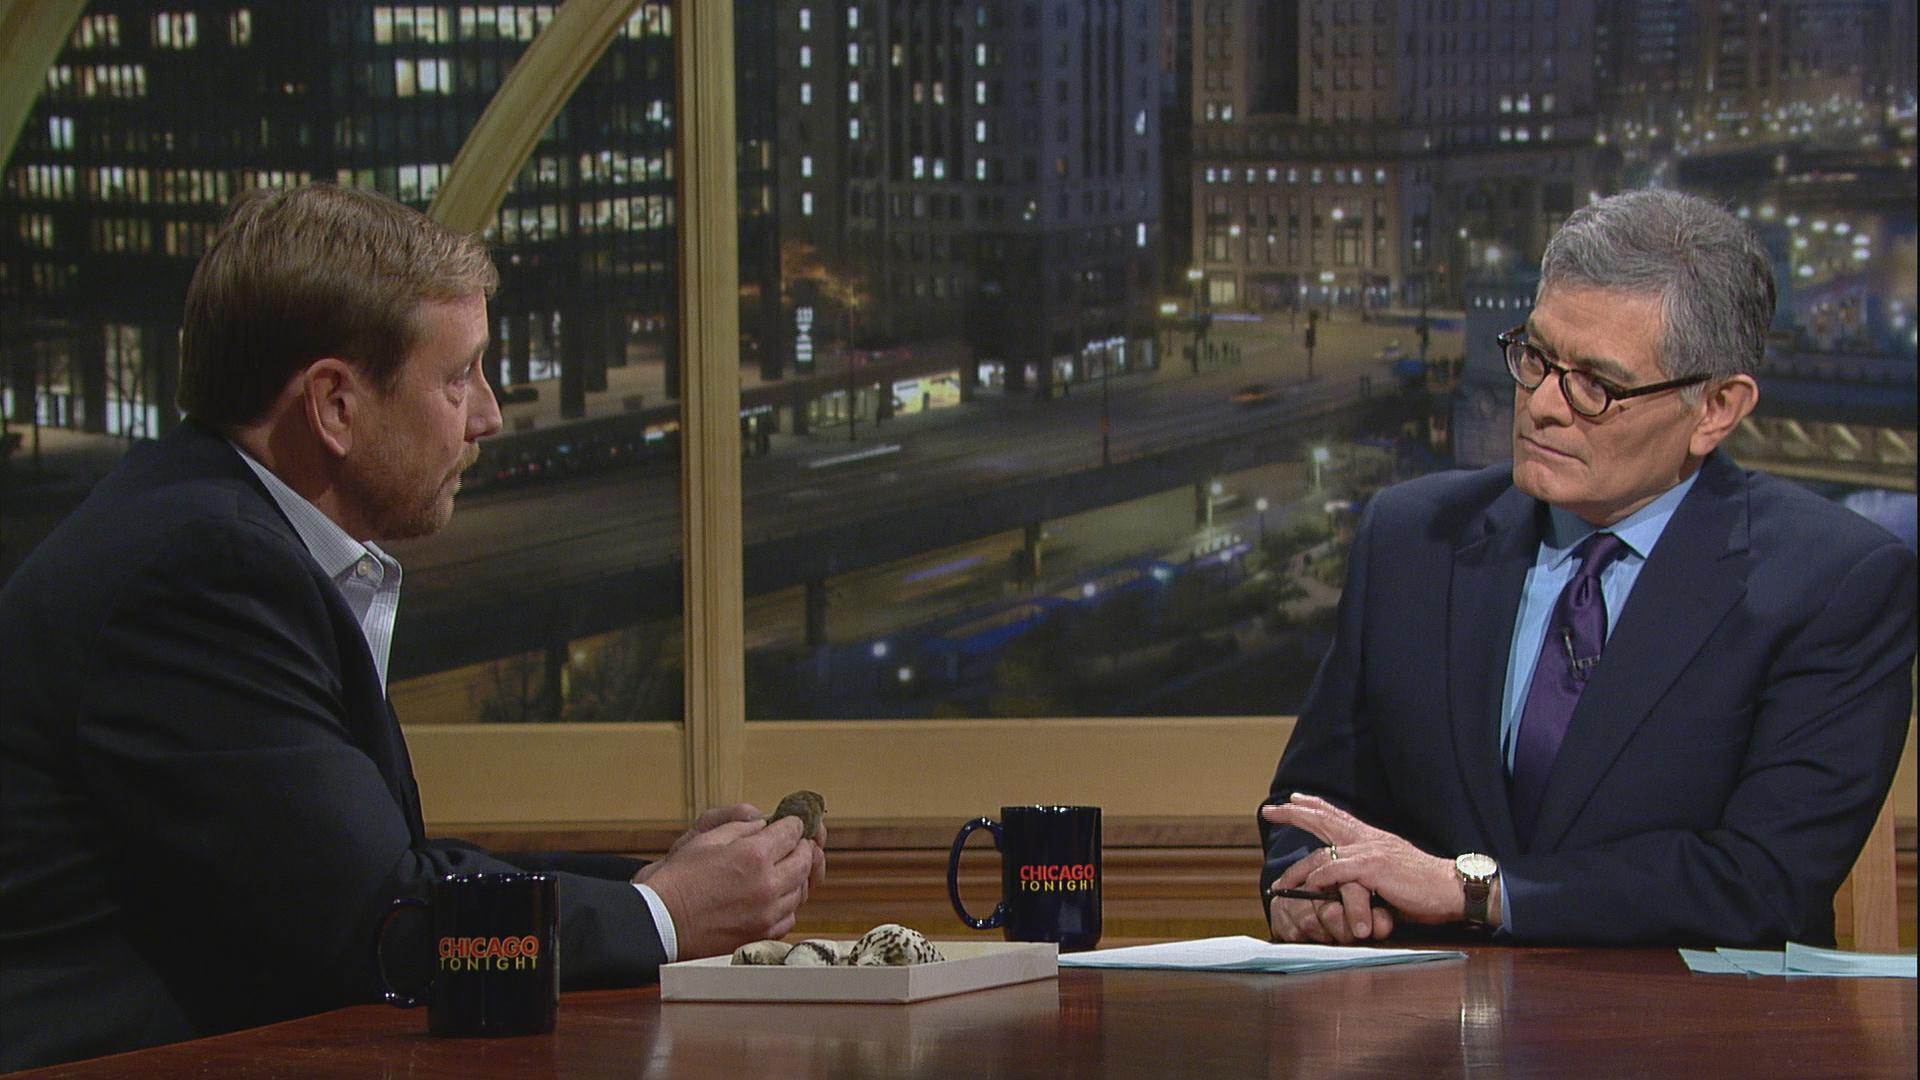 Pete Marra appears on Chicago Tonight with host Phil Ponce on Feb. 1.